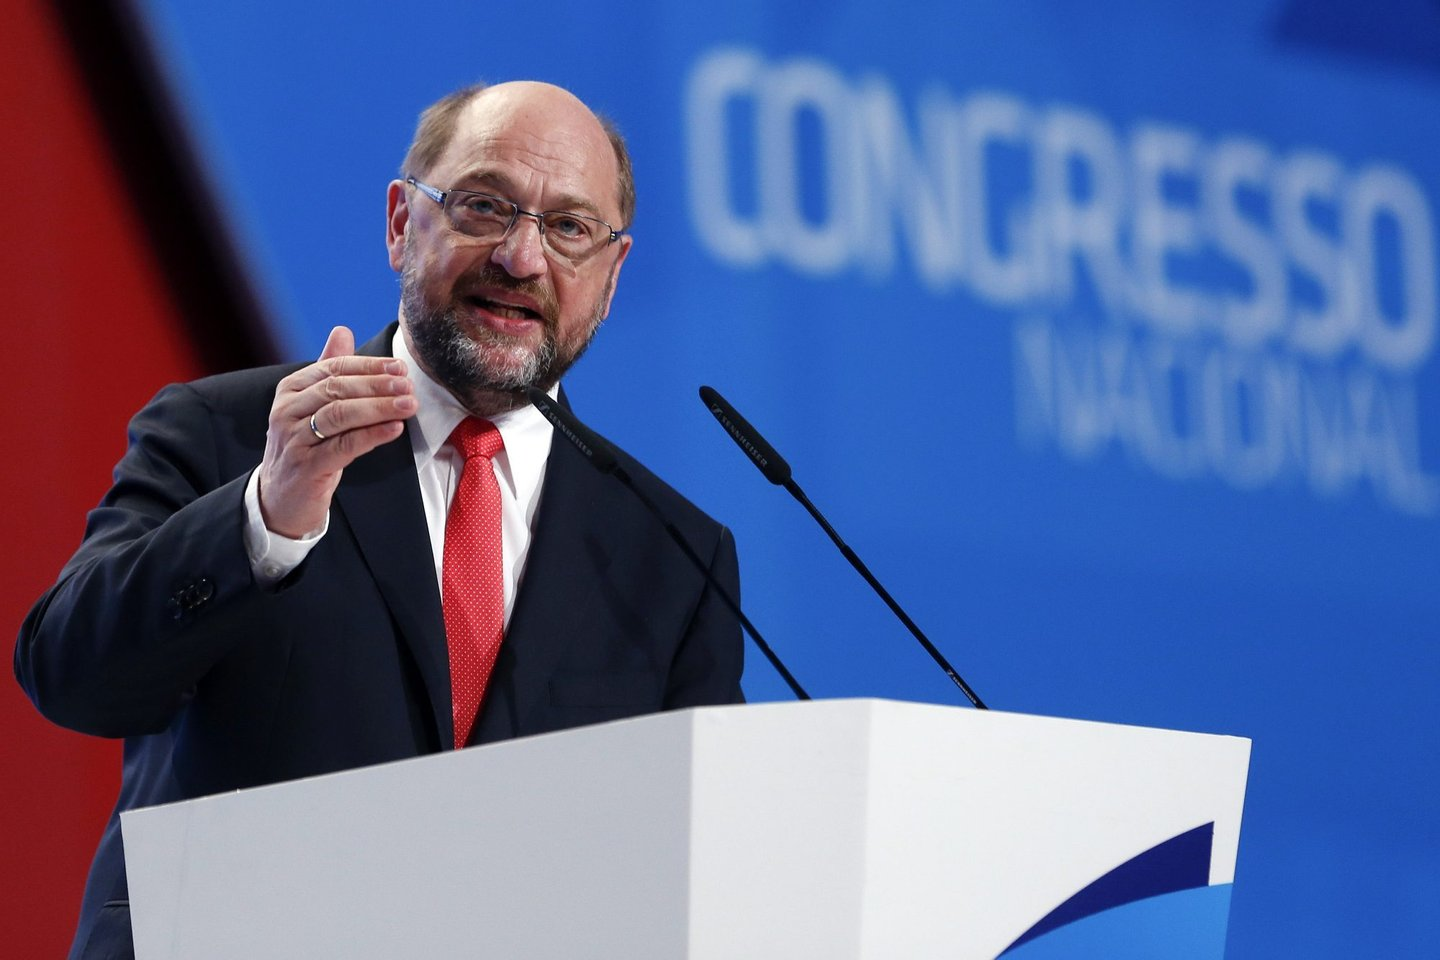 Martin Schulz in socialist congress